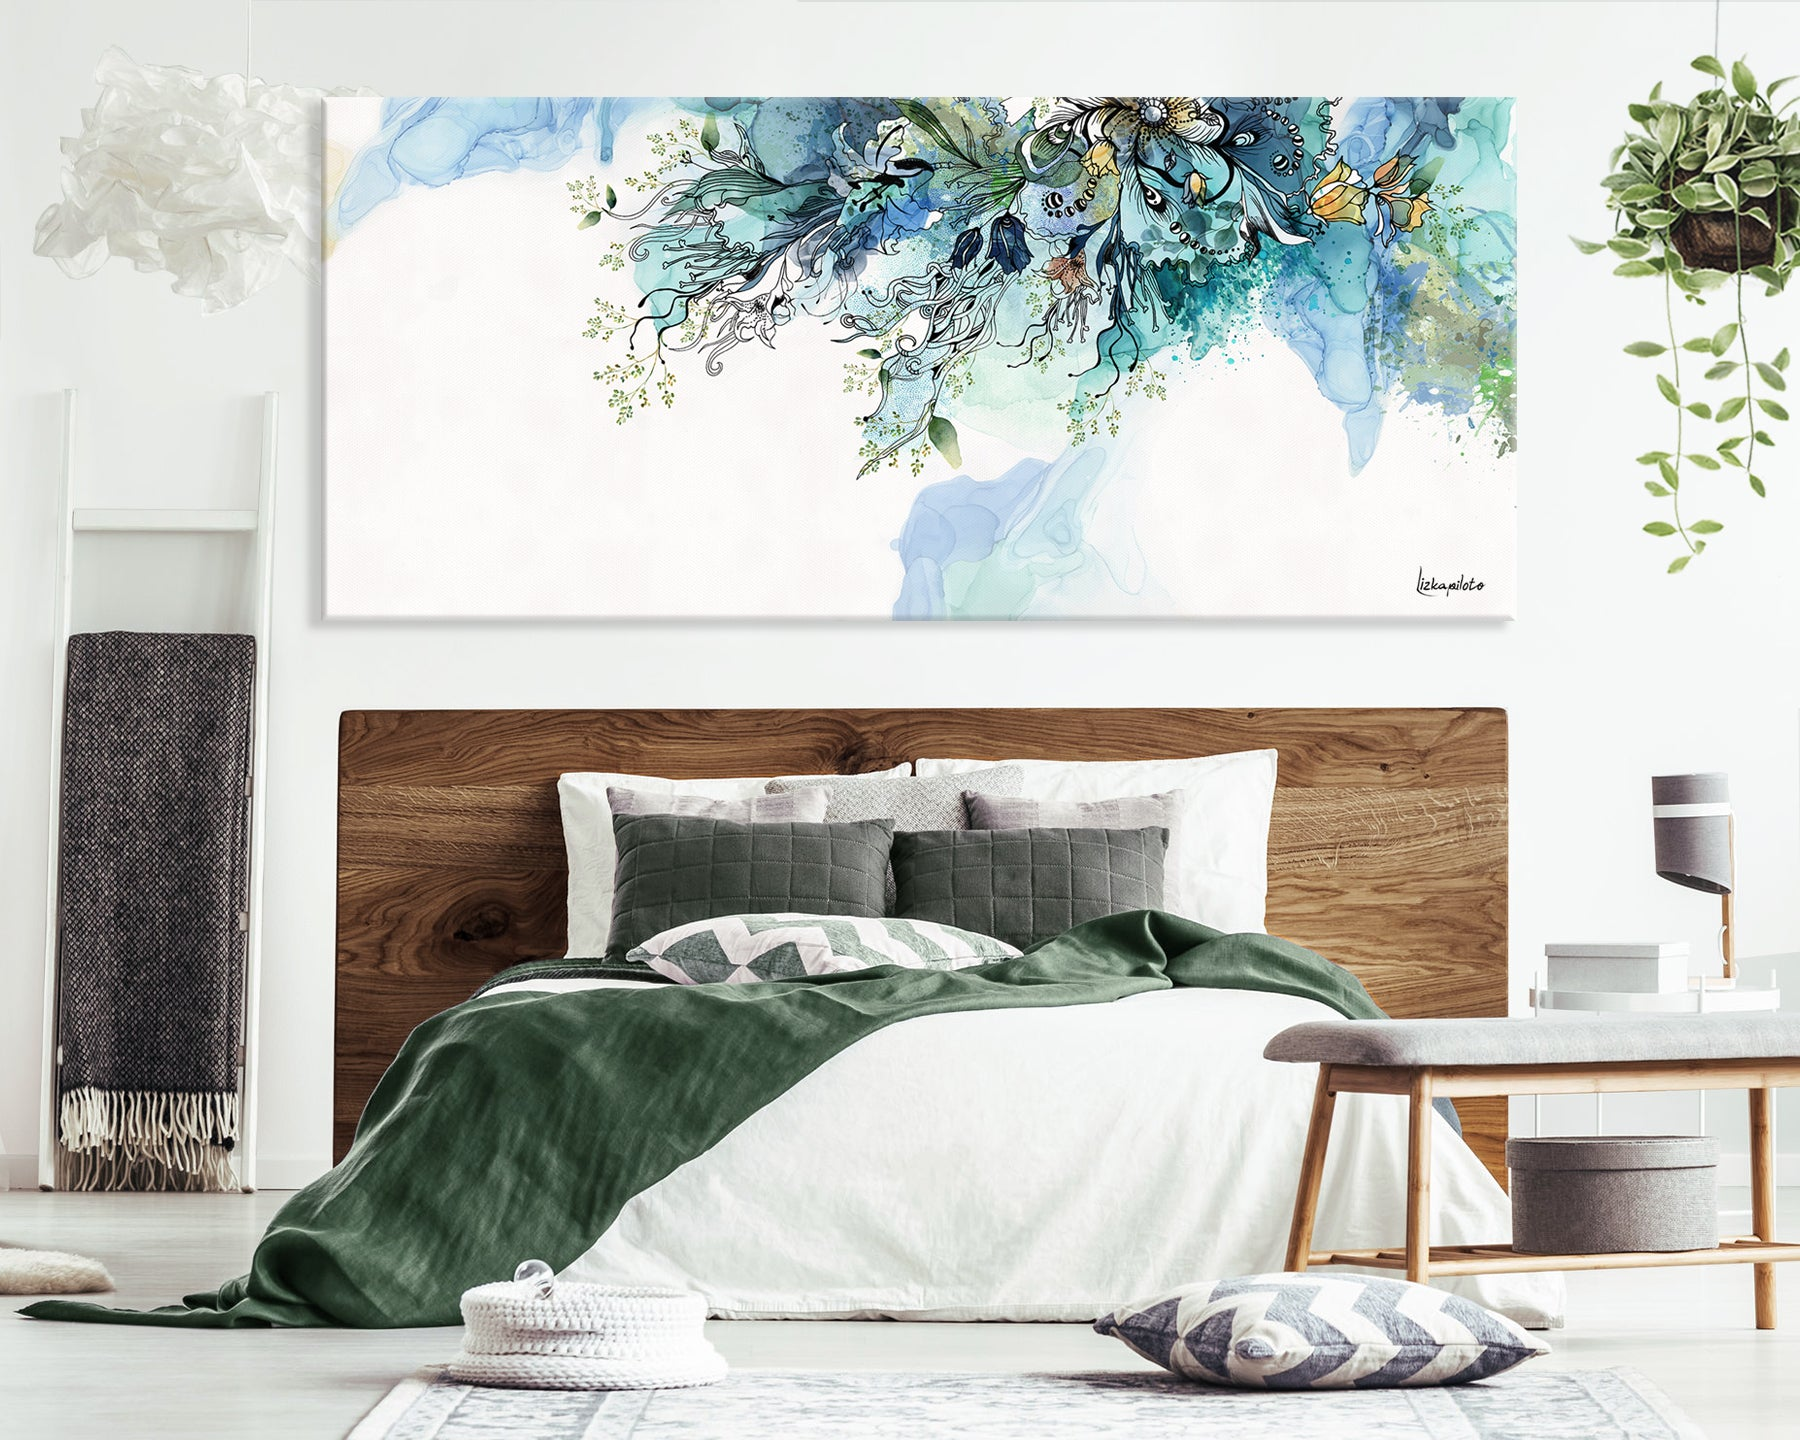 Turquoise abstract painting on large canvas, on bedroom wall